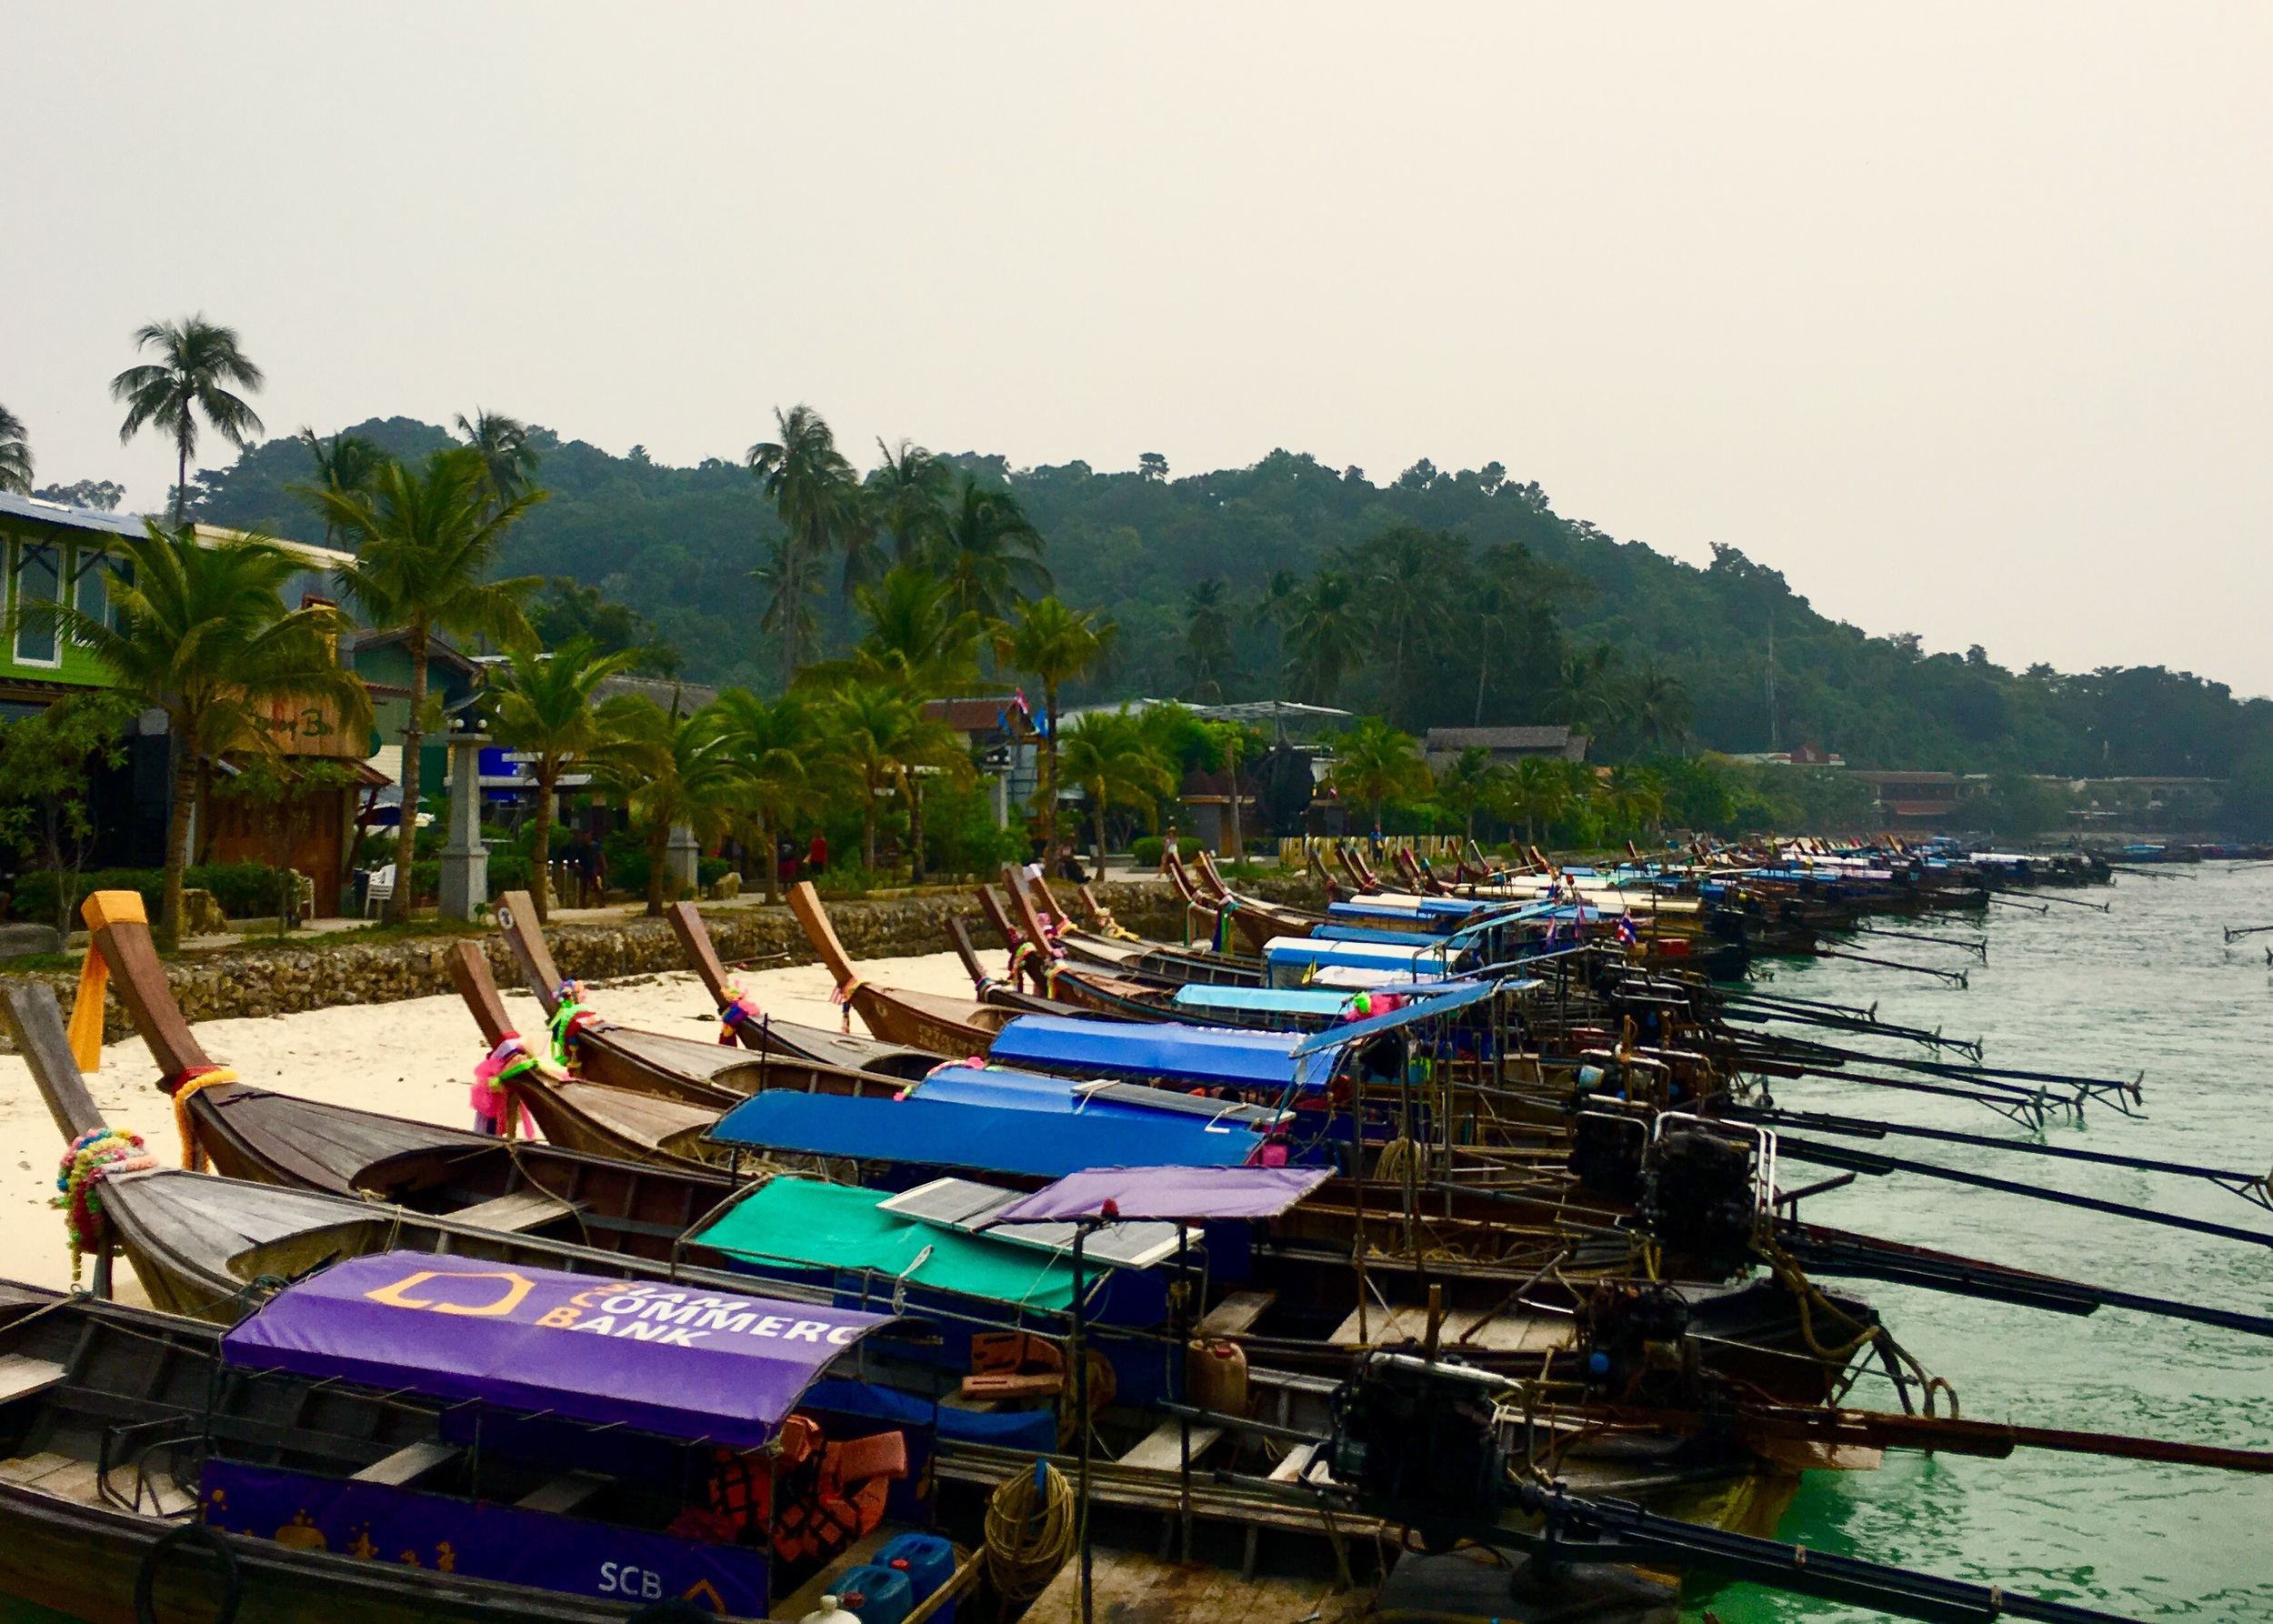 The main pier and welcoming point to Ko Phi Phi island.